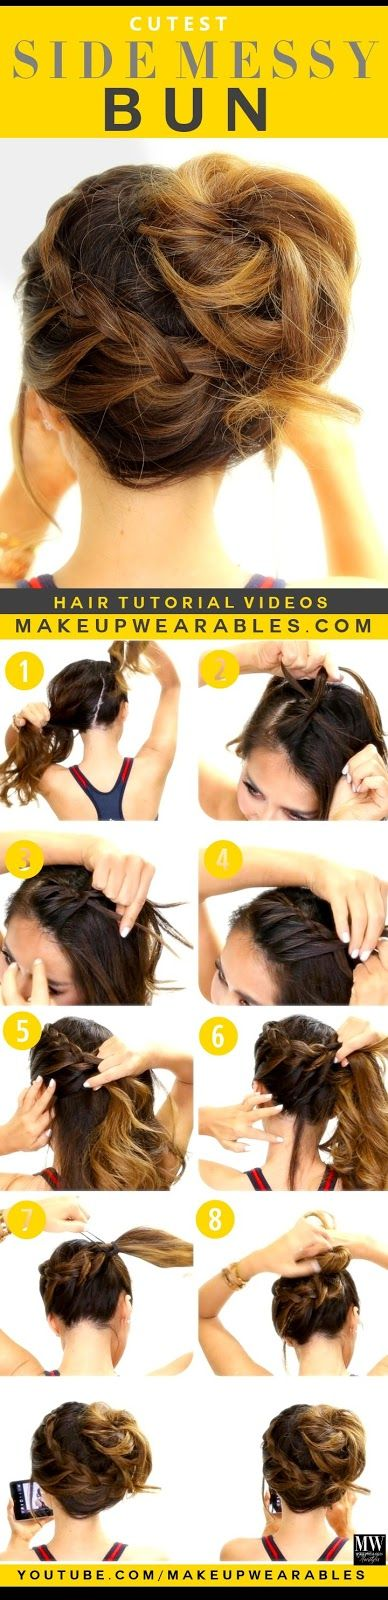 The Hottest Female Hair Trends for 2015 Year | Workout Craze